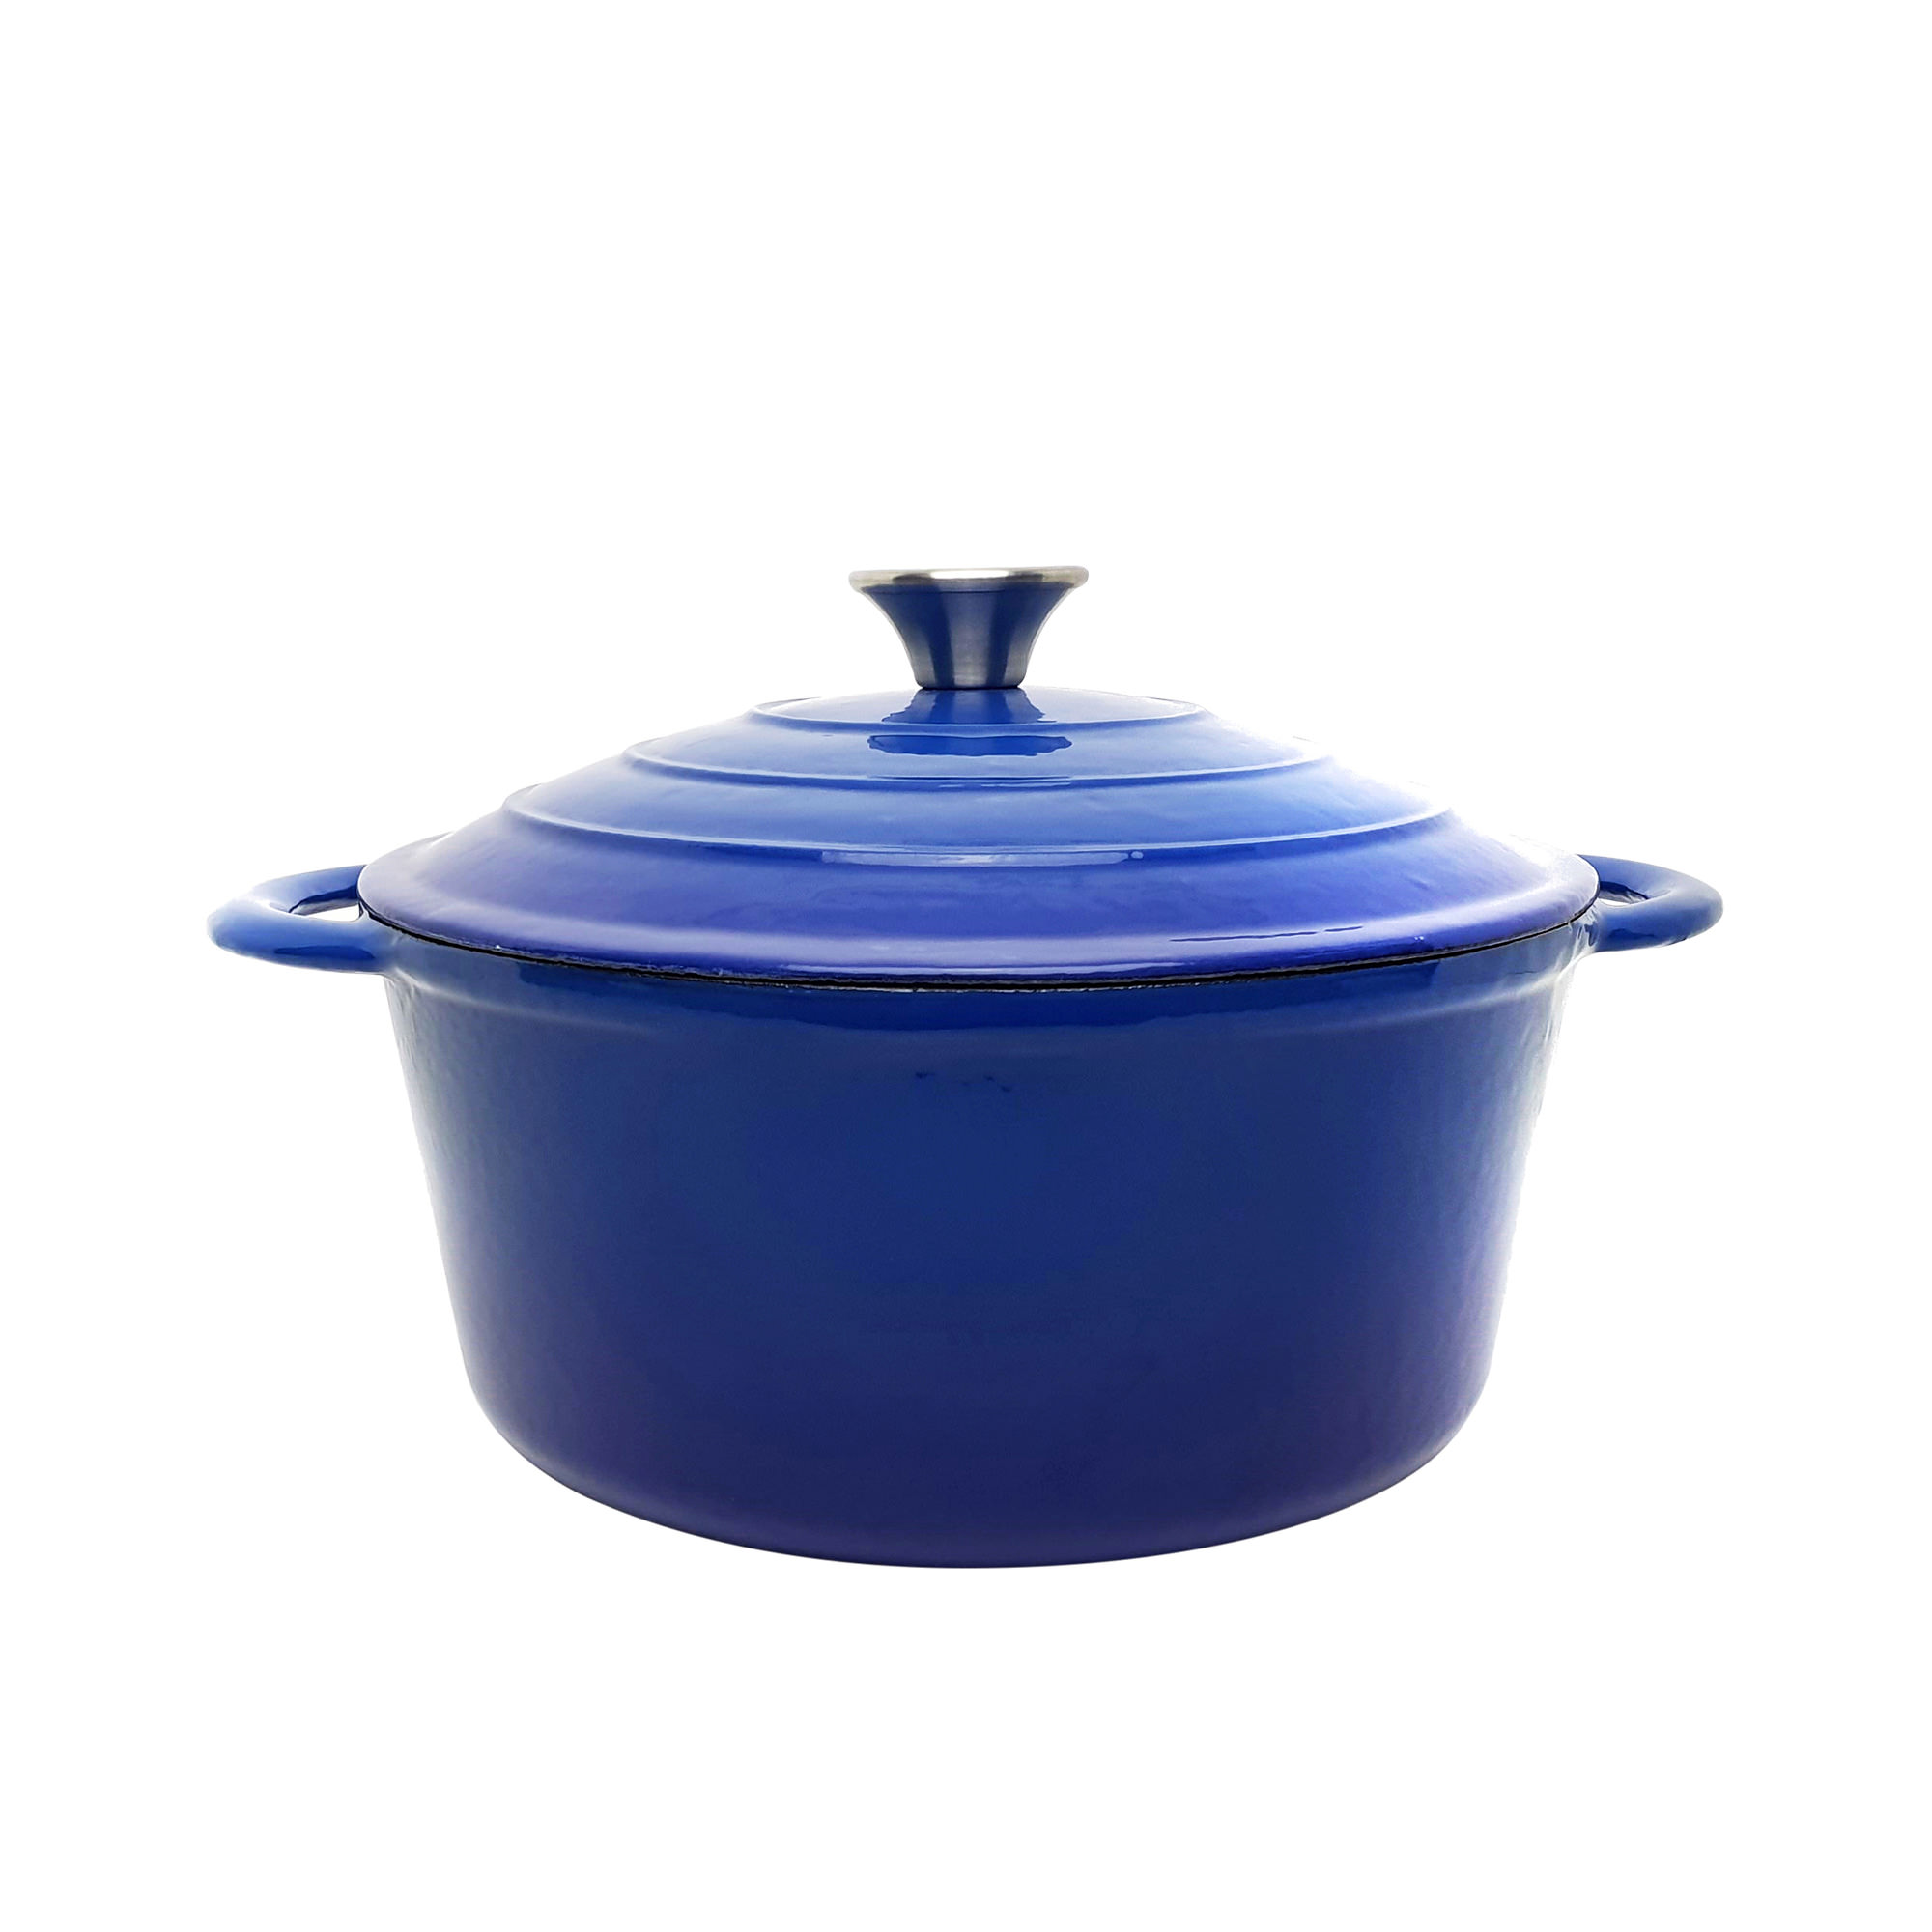 Classica Round Enamelled Cast Iron Dutch Oven 26cm - 5.5L Blue